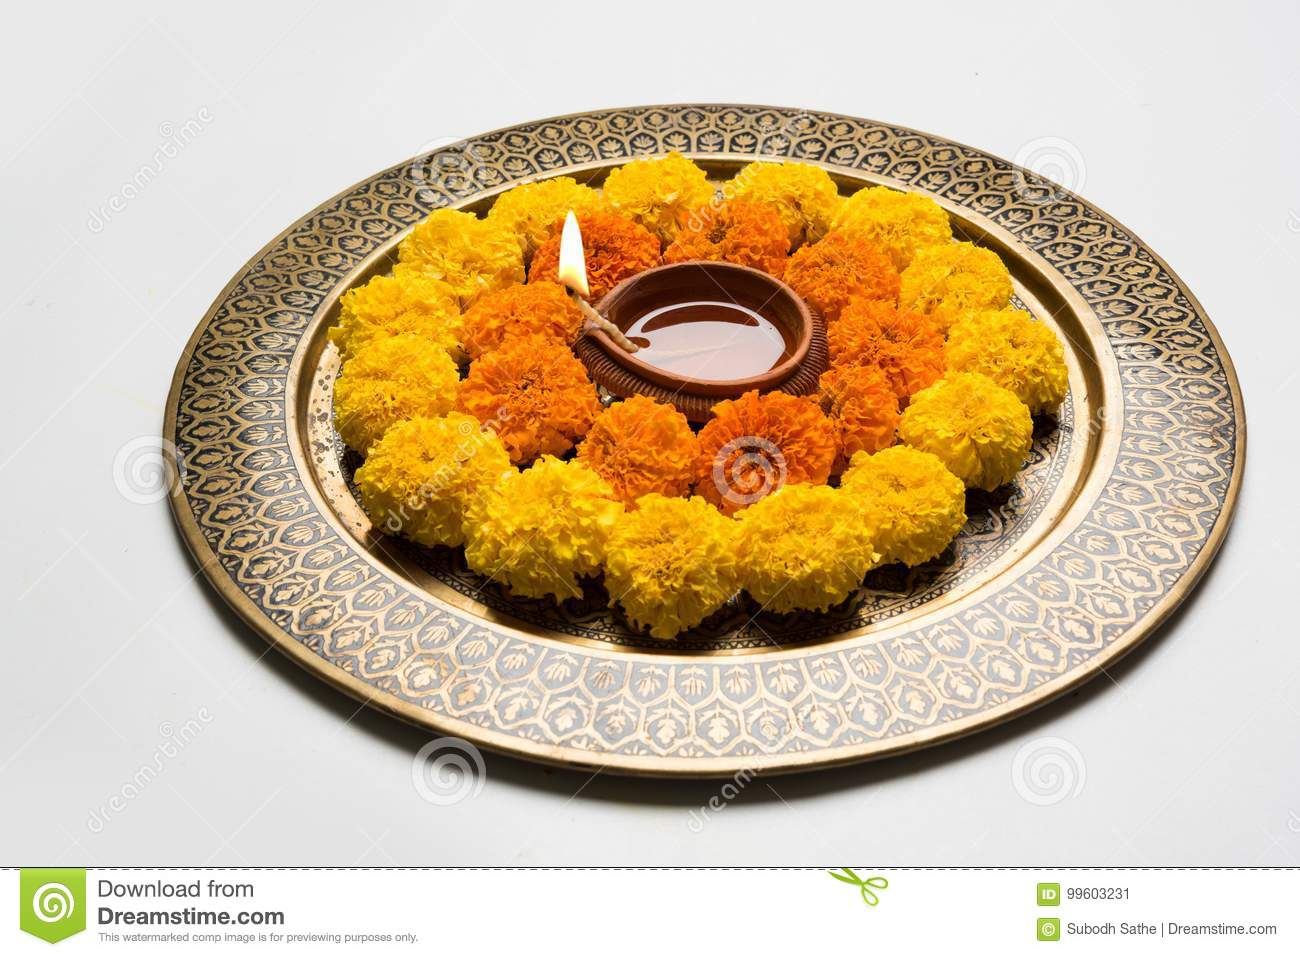 Flower Rangoli For Diwali Or Pongal Or Onam Made Using Marigold Or Zendu Flowers And Red Rose Petals Over White Background With Di Stock Image Image Of Mango Flower 99603231